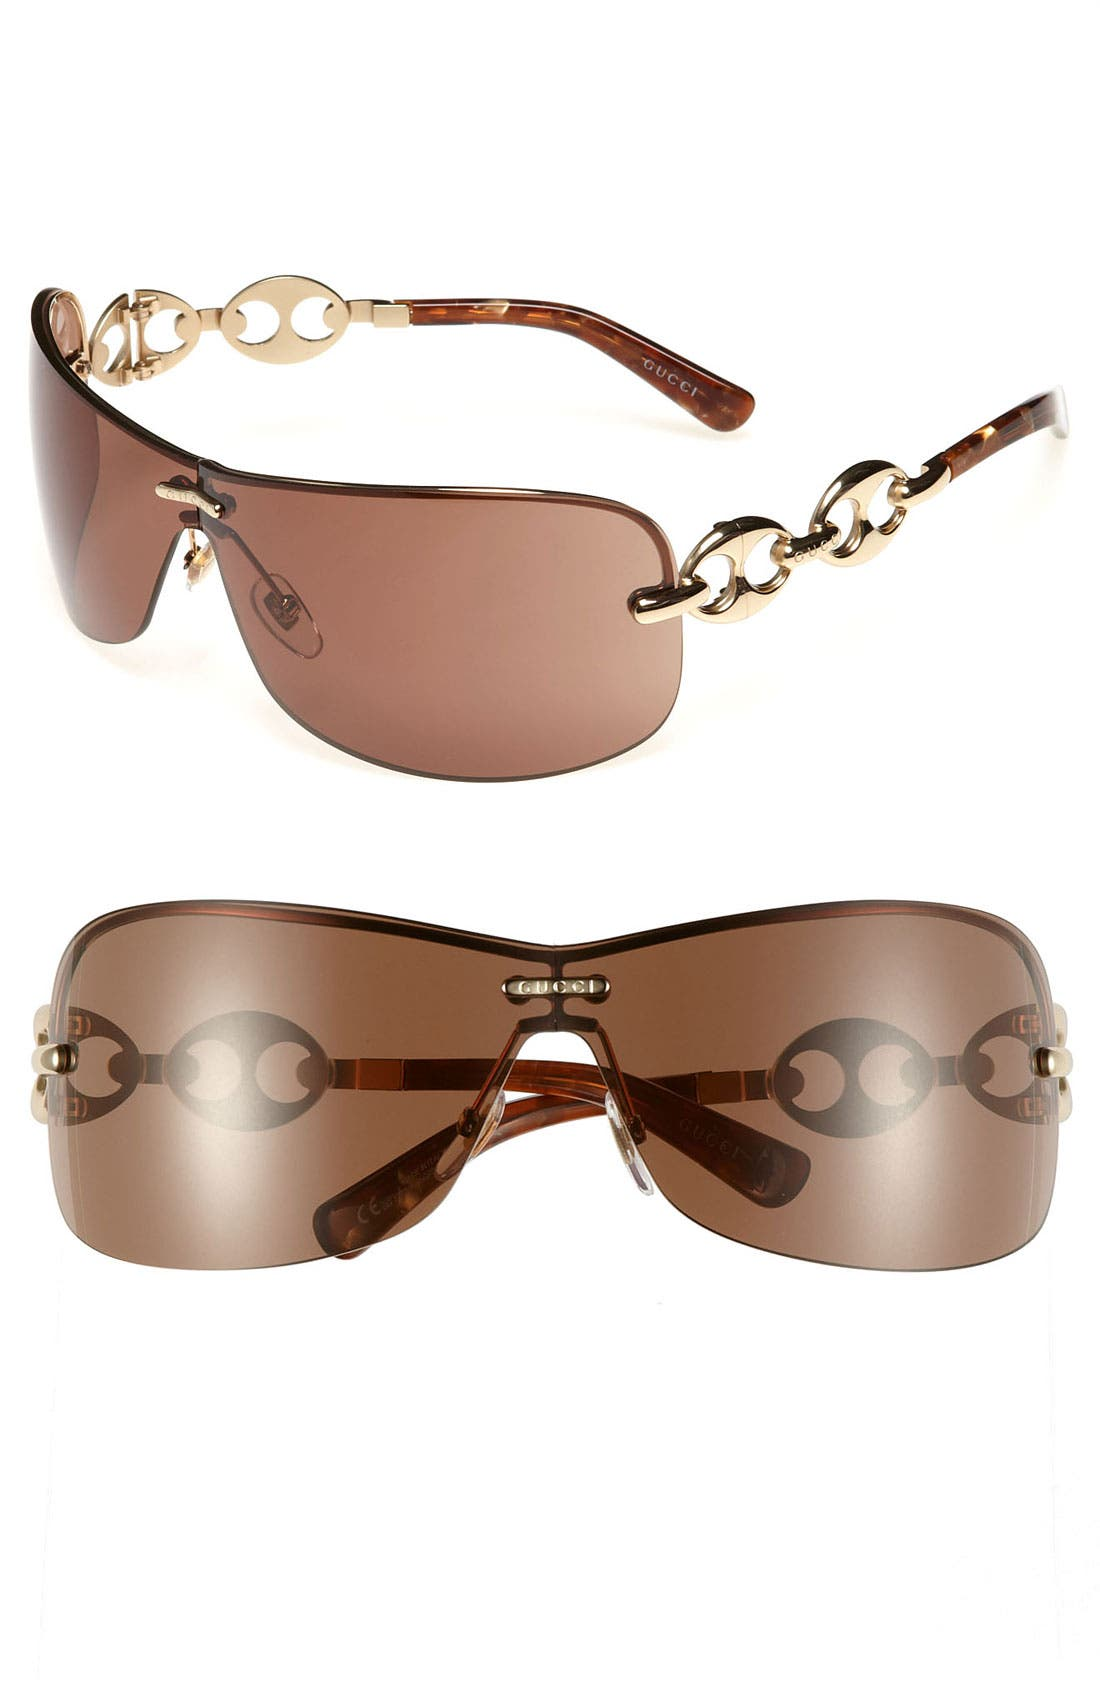 Main Image - Gucci Rimless Shield Sunglasses with Chain Detail